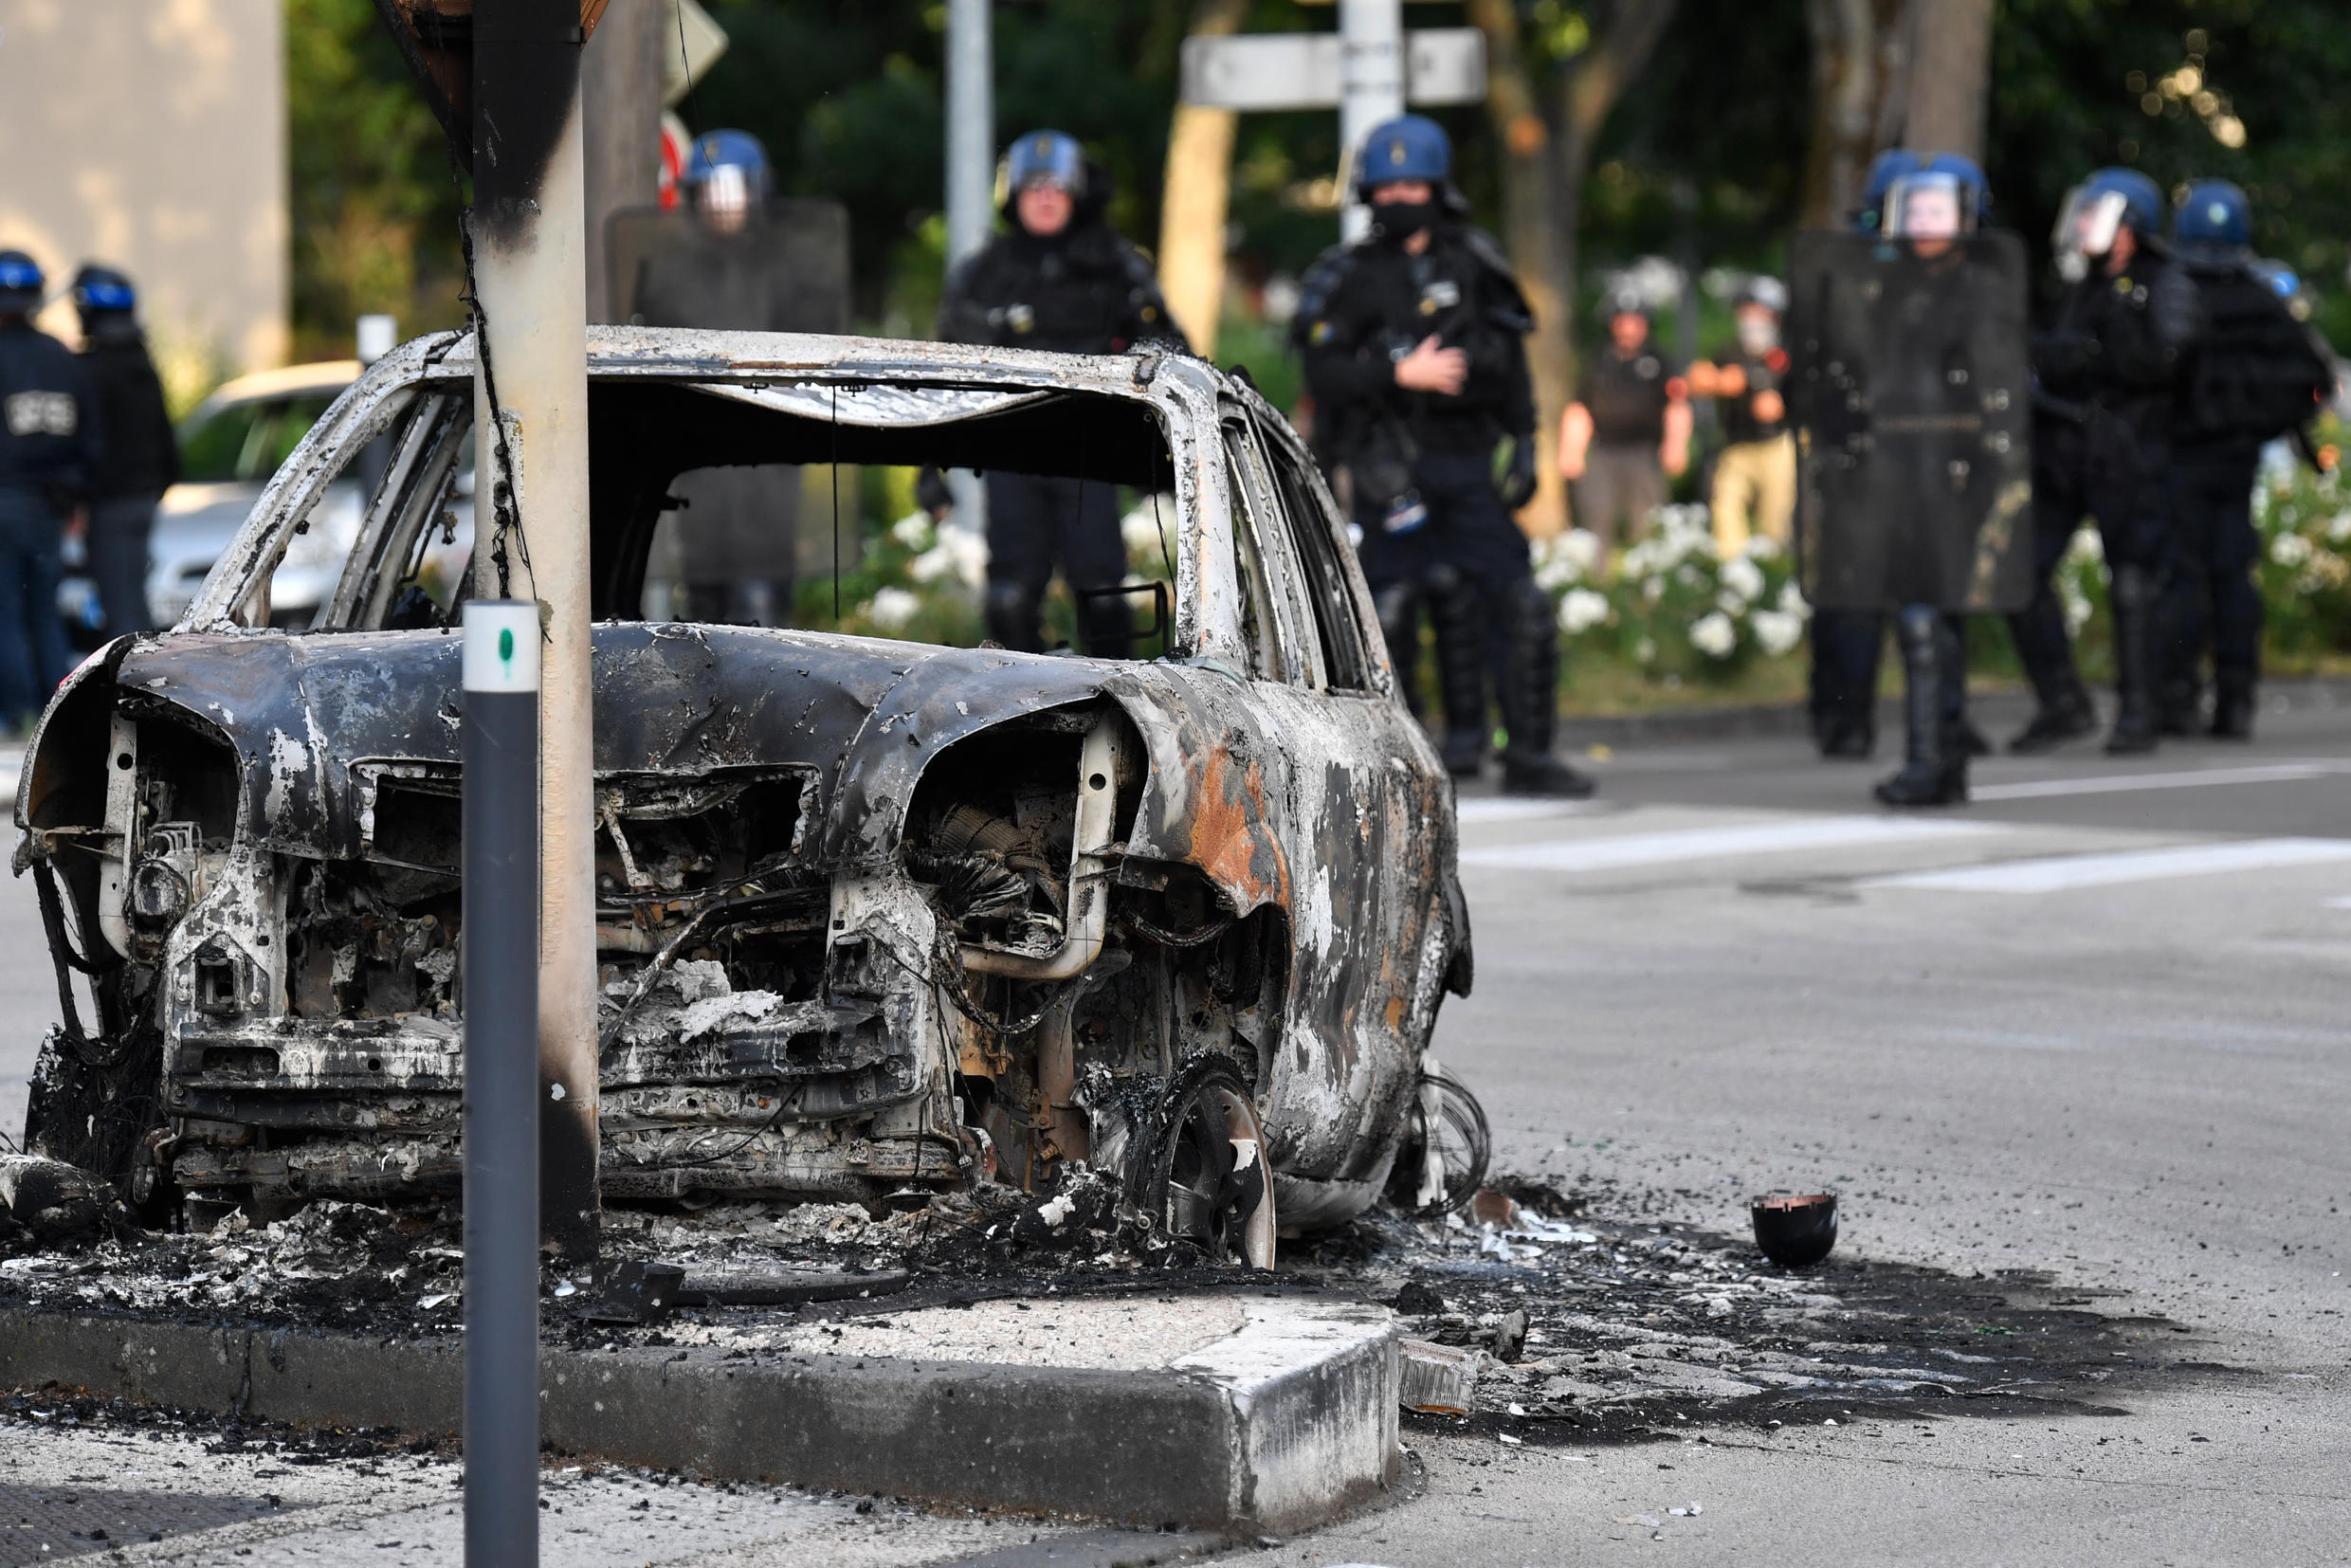 Monday's violence in Dijon was the fourth consecutive night of unrest